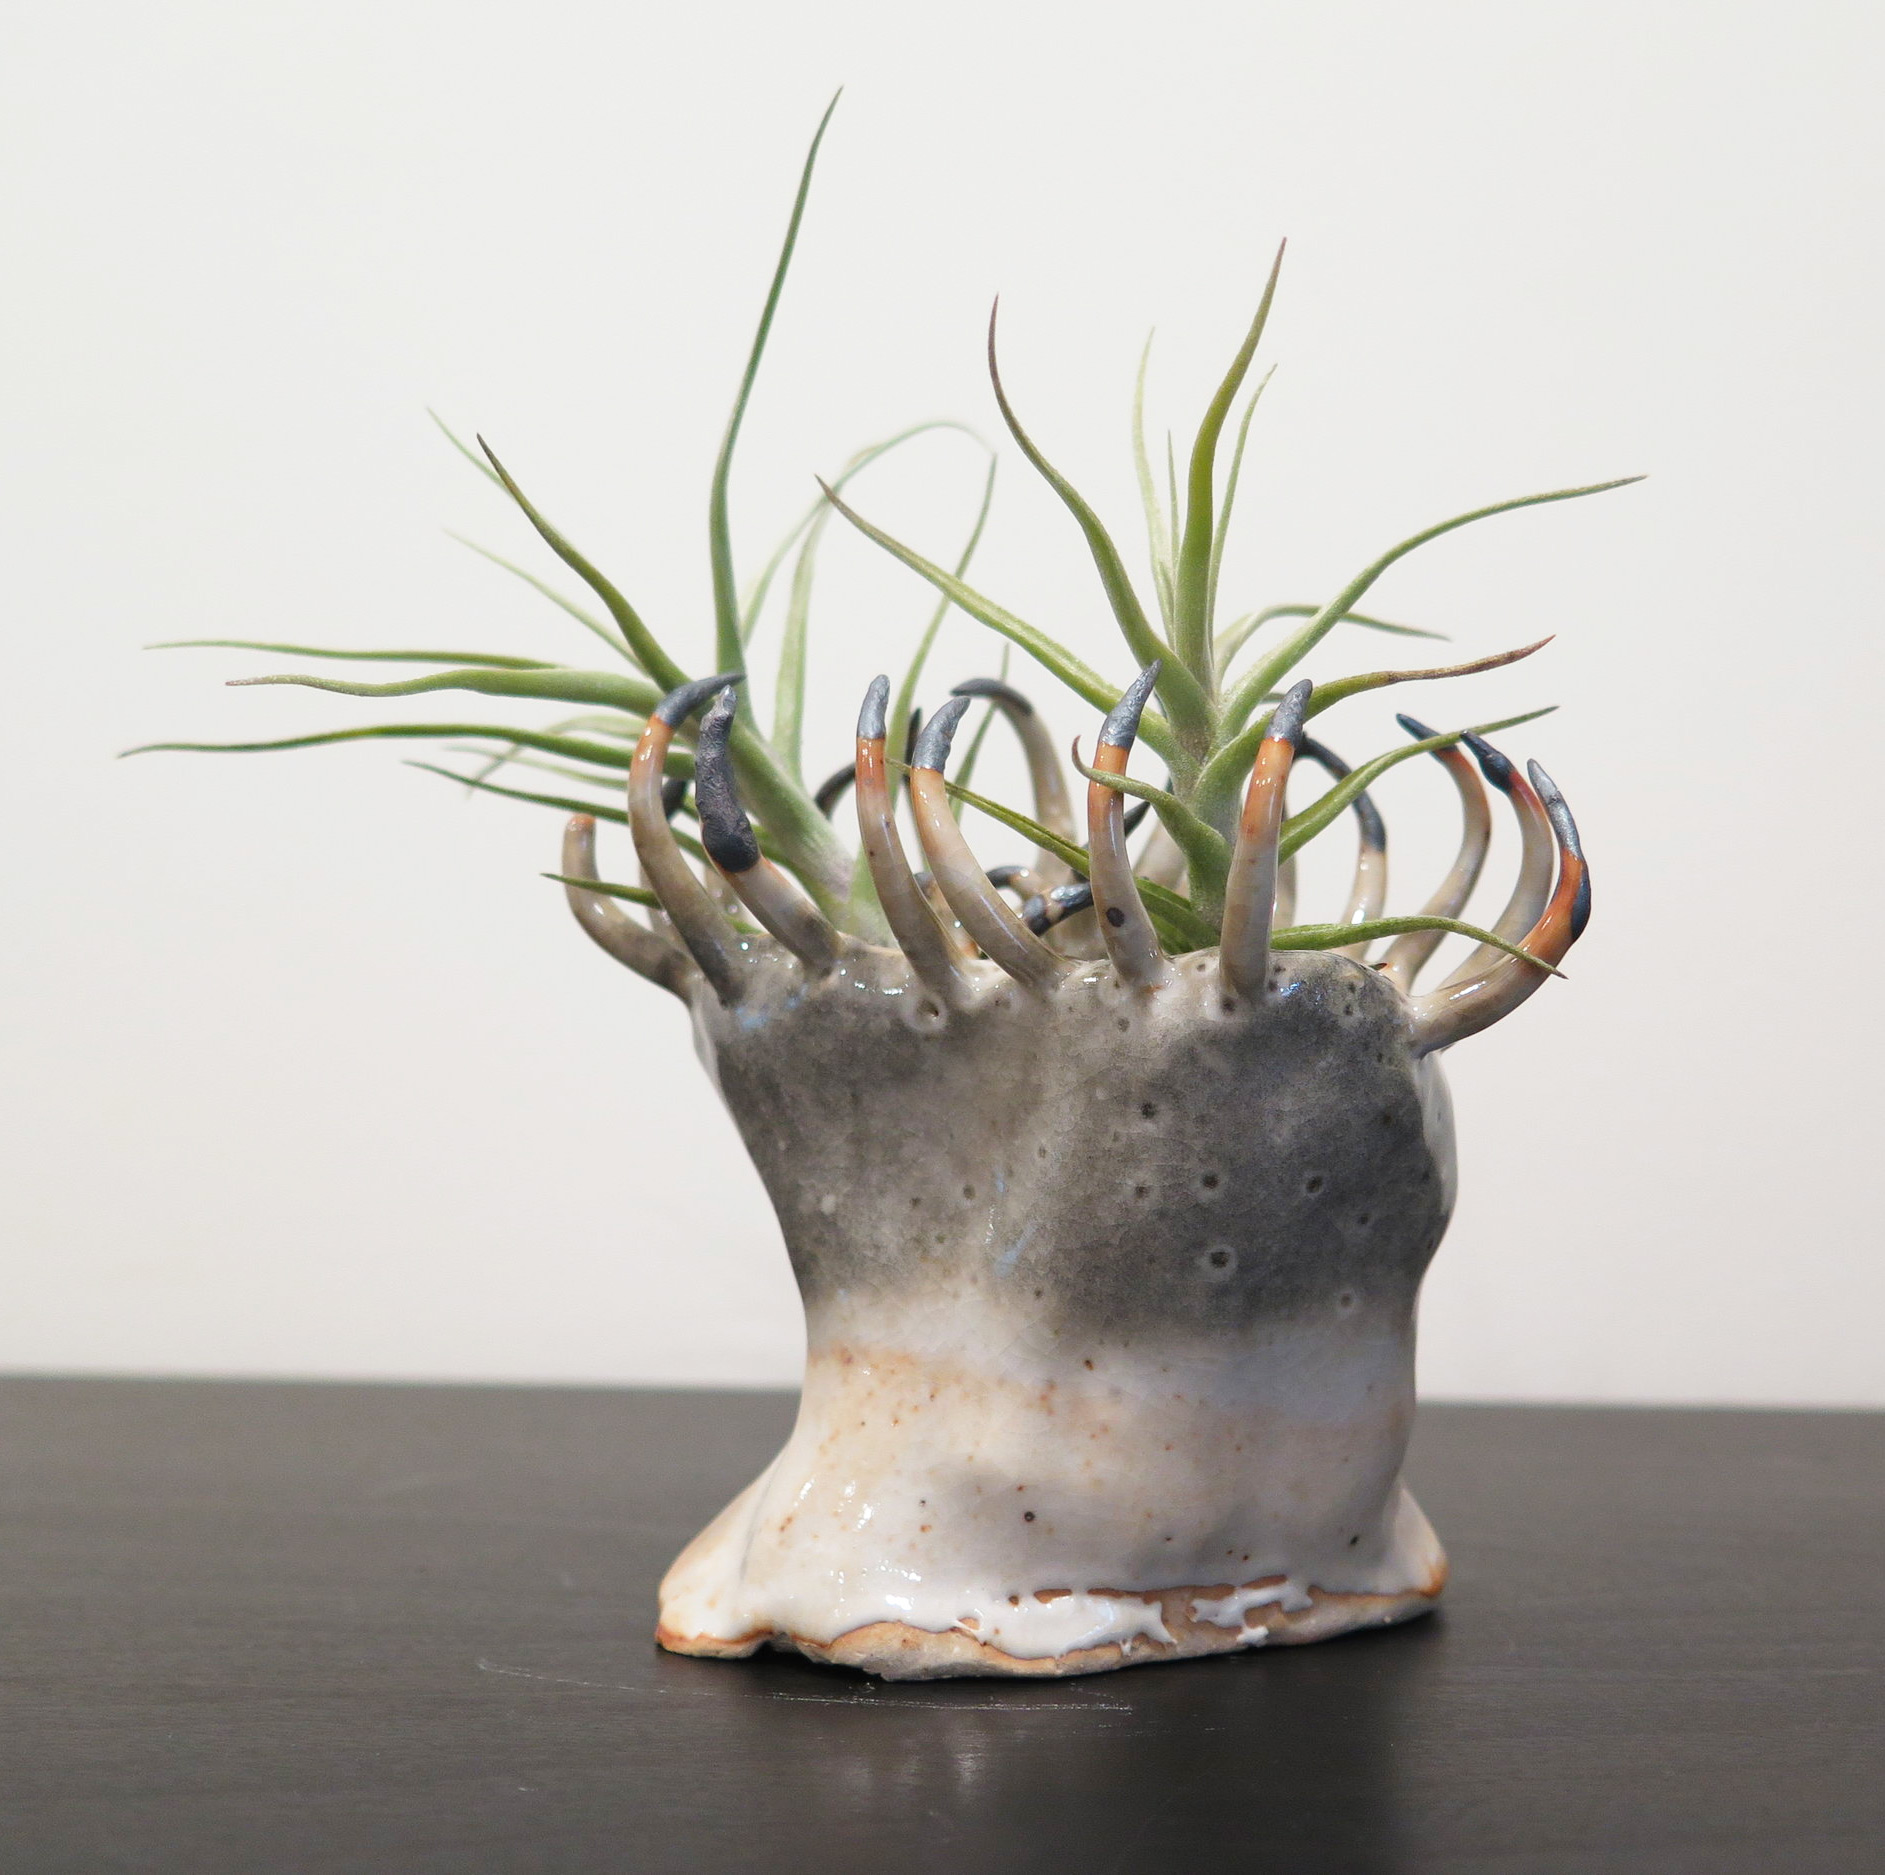 Claws and Teeth Emerge From Otherworldly Ceramic Vessels by Gregory